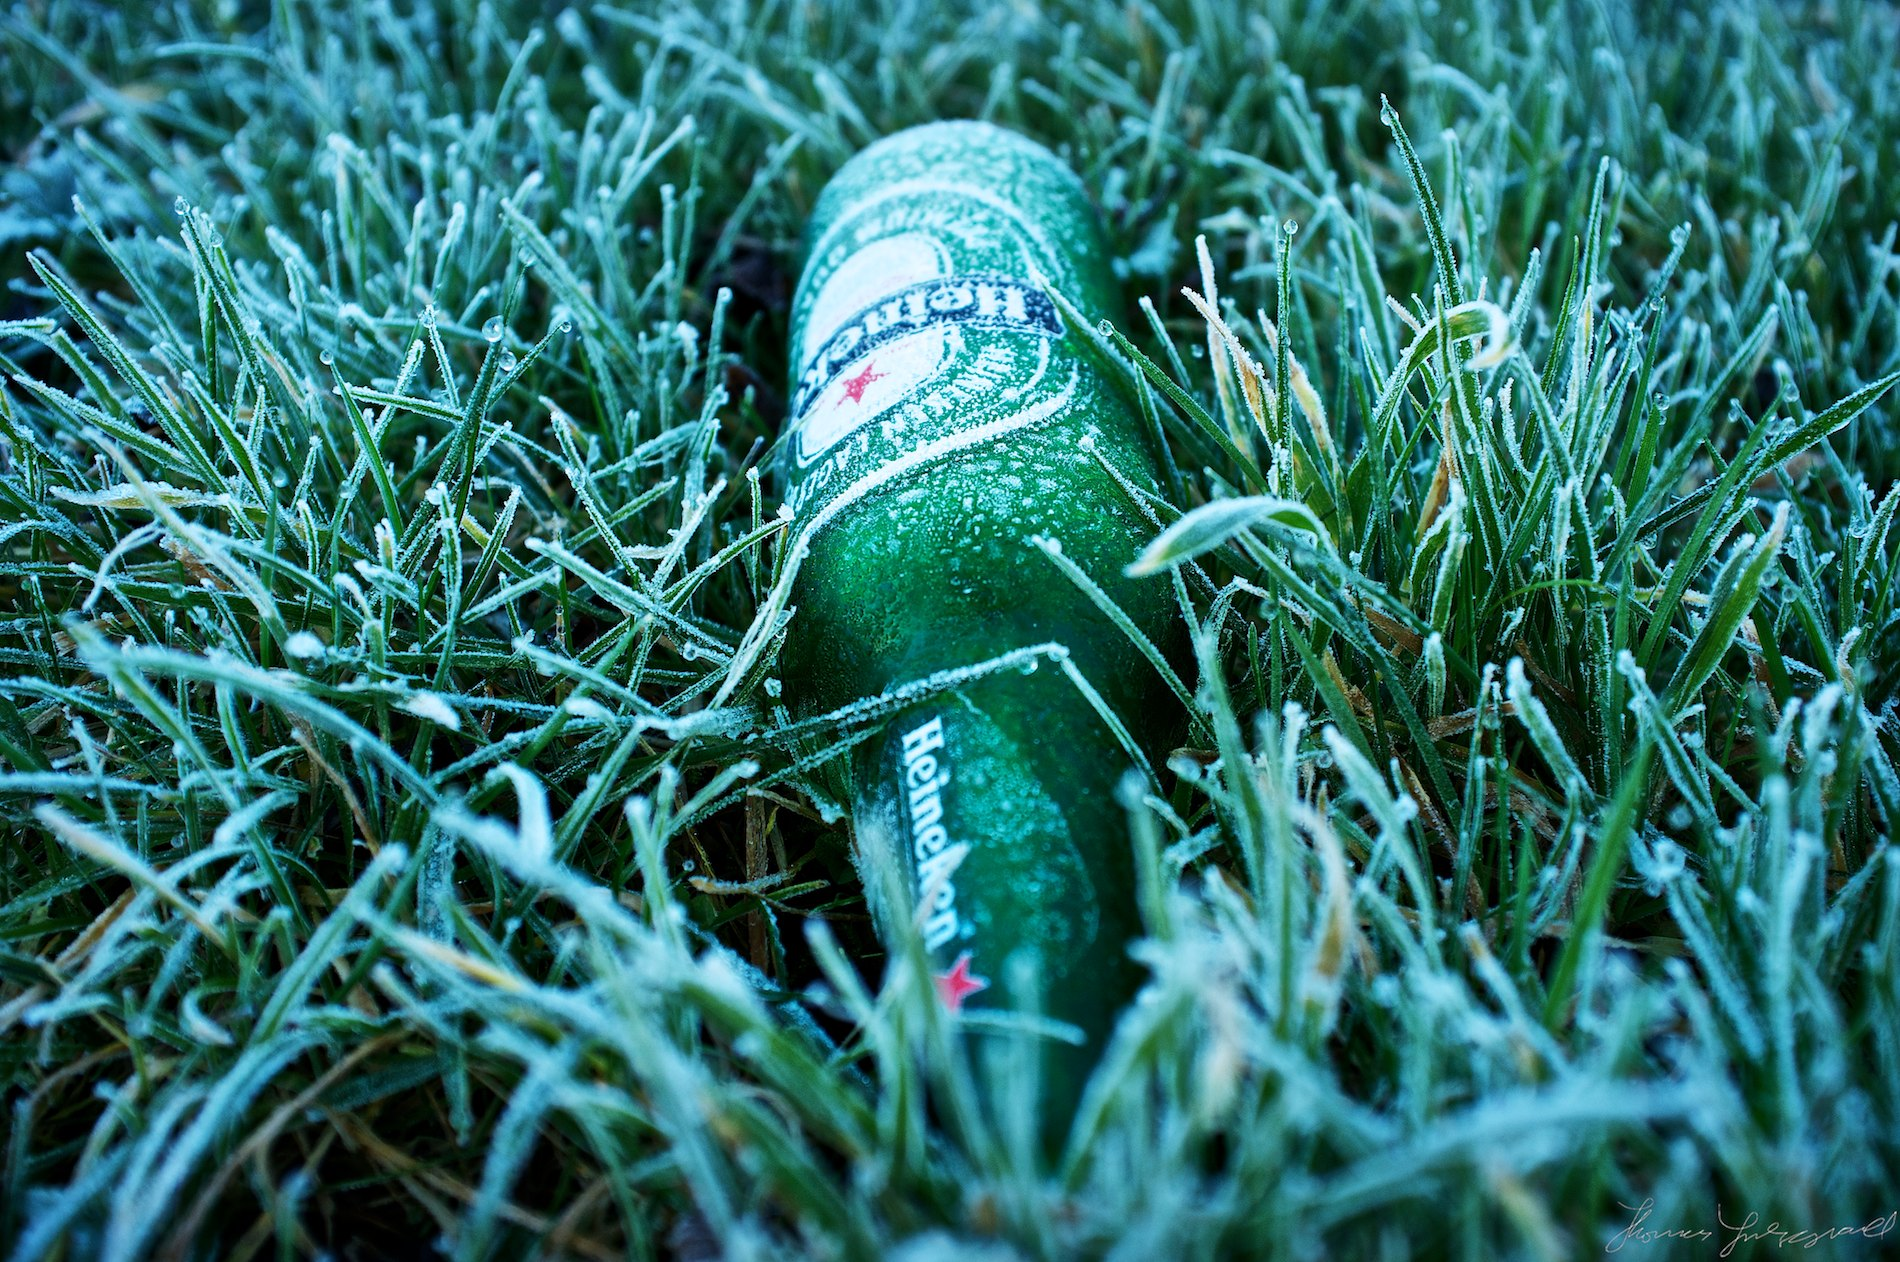 Heineken Bottle in the Frost